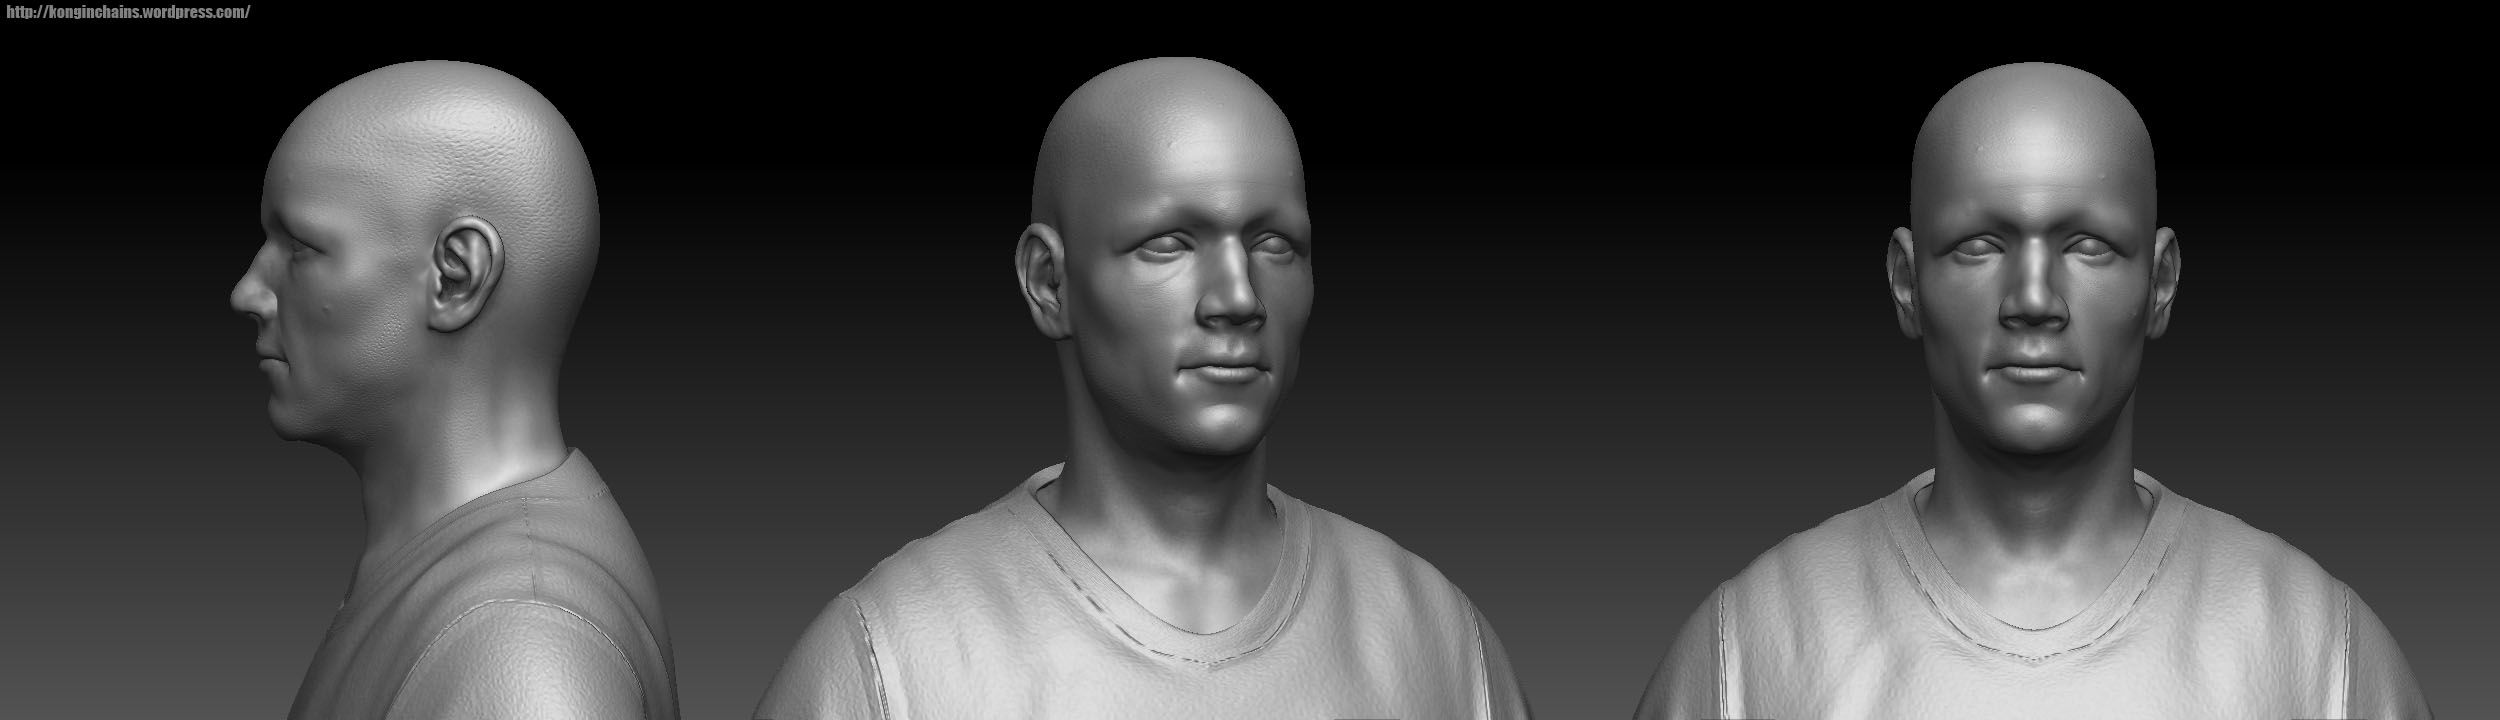 guy_head_render.jpg